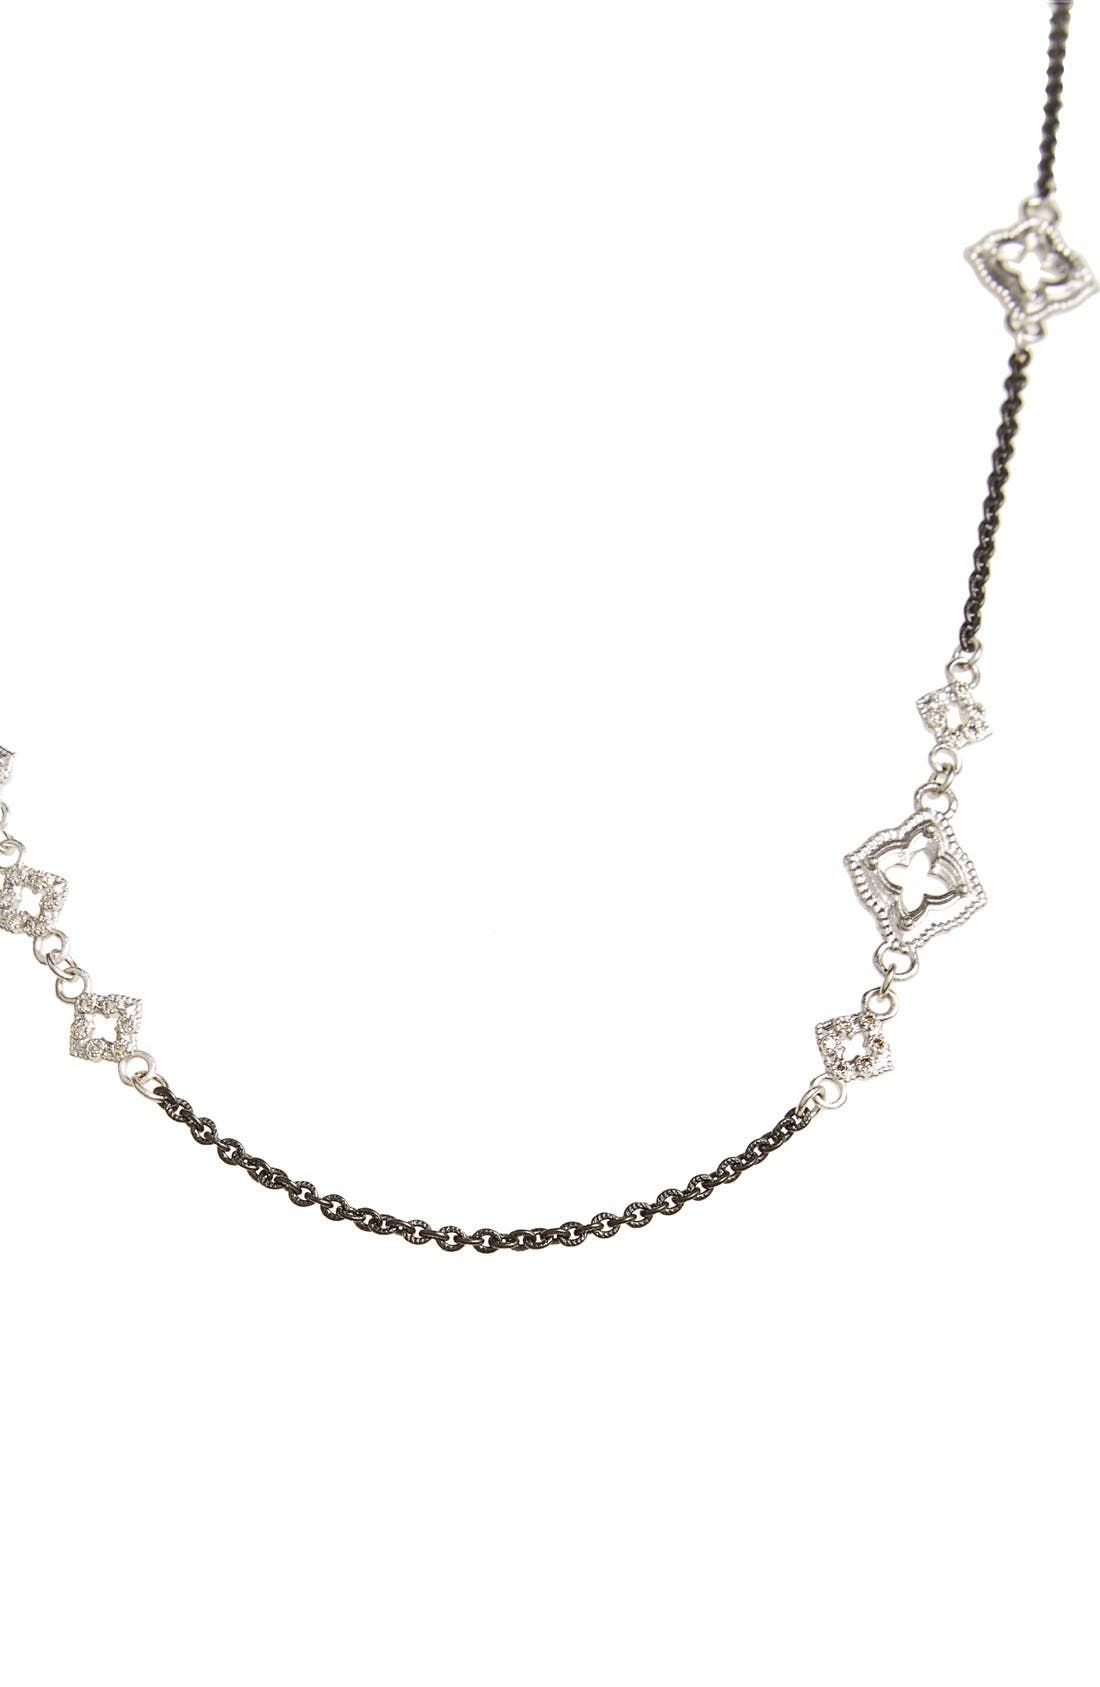 New World Chain Scroll Station Necklace,                             Alternate thumbnail 2, color,                             Champagne/ Black